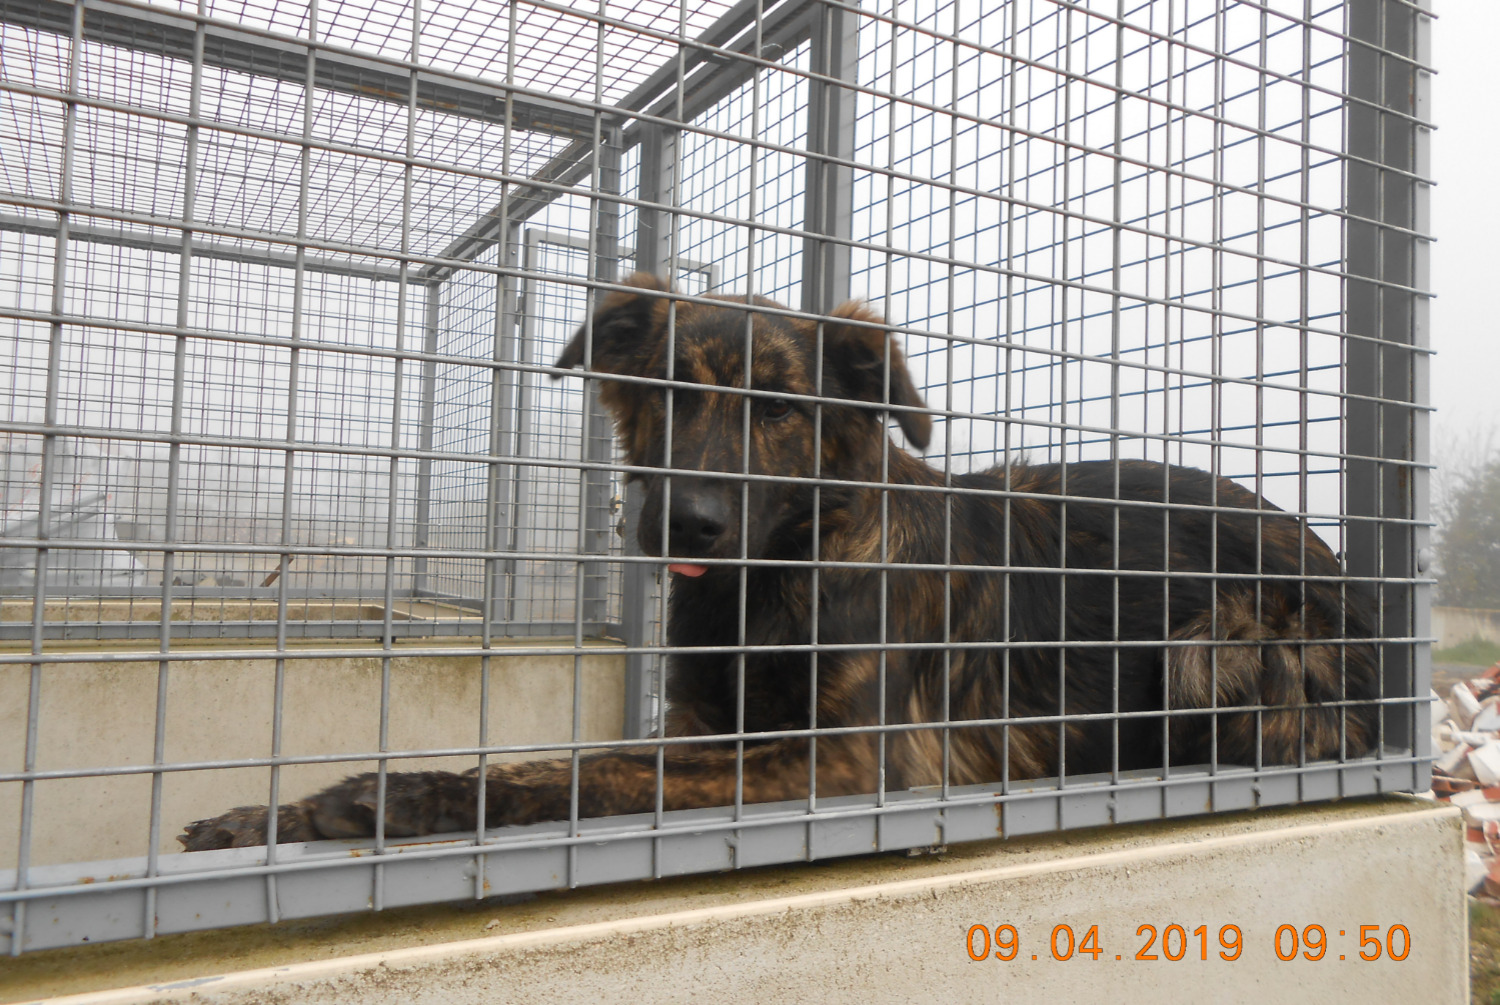 Discovery alert Dog miscegenation Female , Between 7 and 9 months La Trimouille France